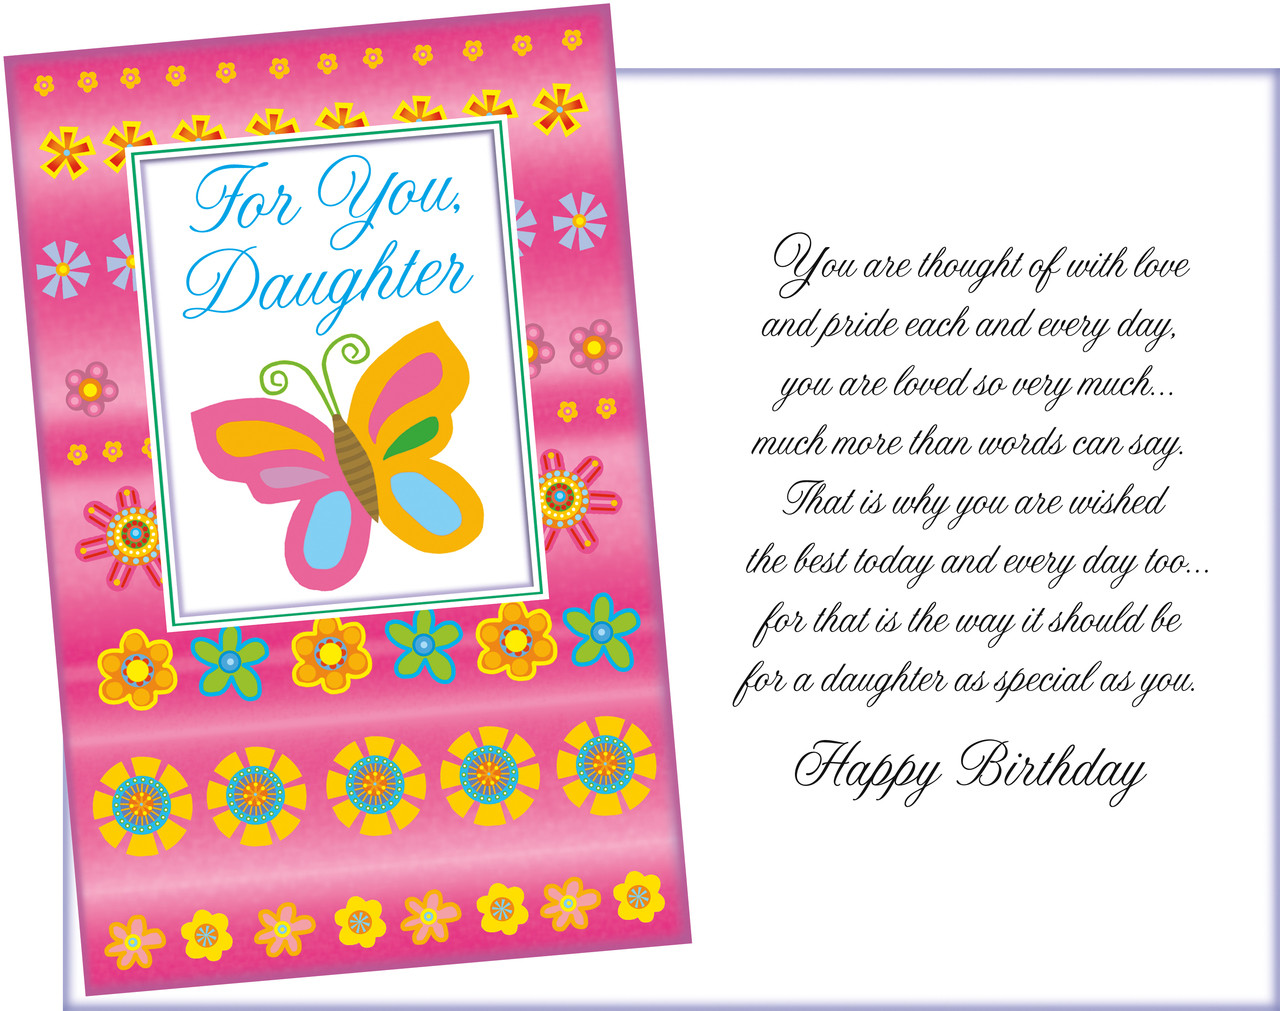 95198 Six Daughter Birthday Greeting Cards With Envelopes